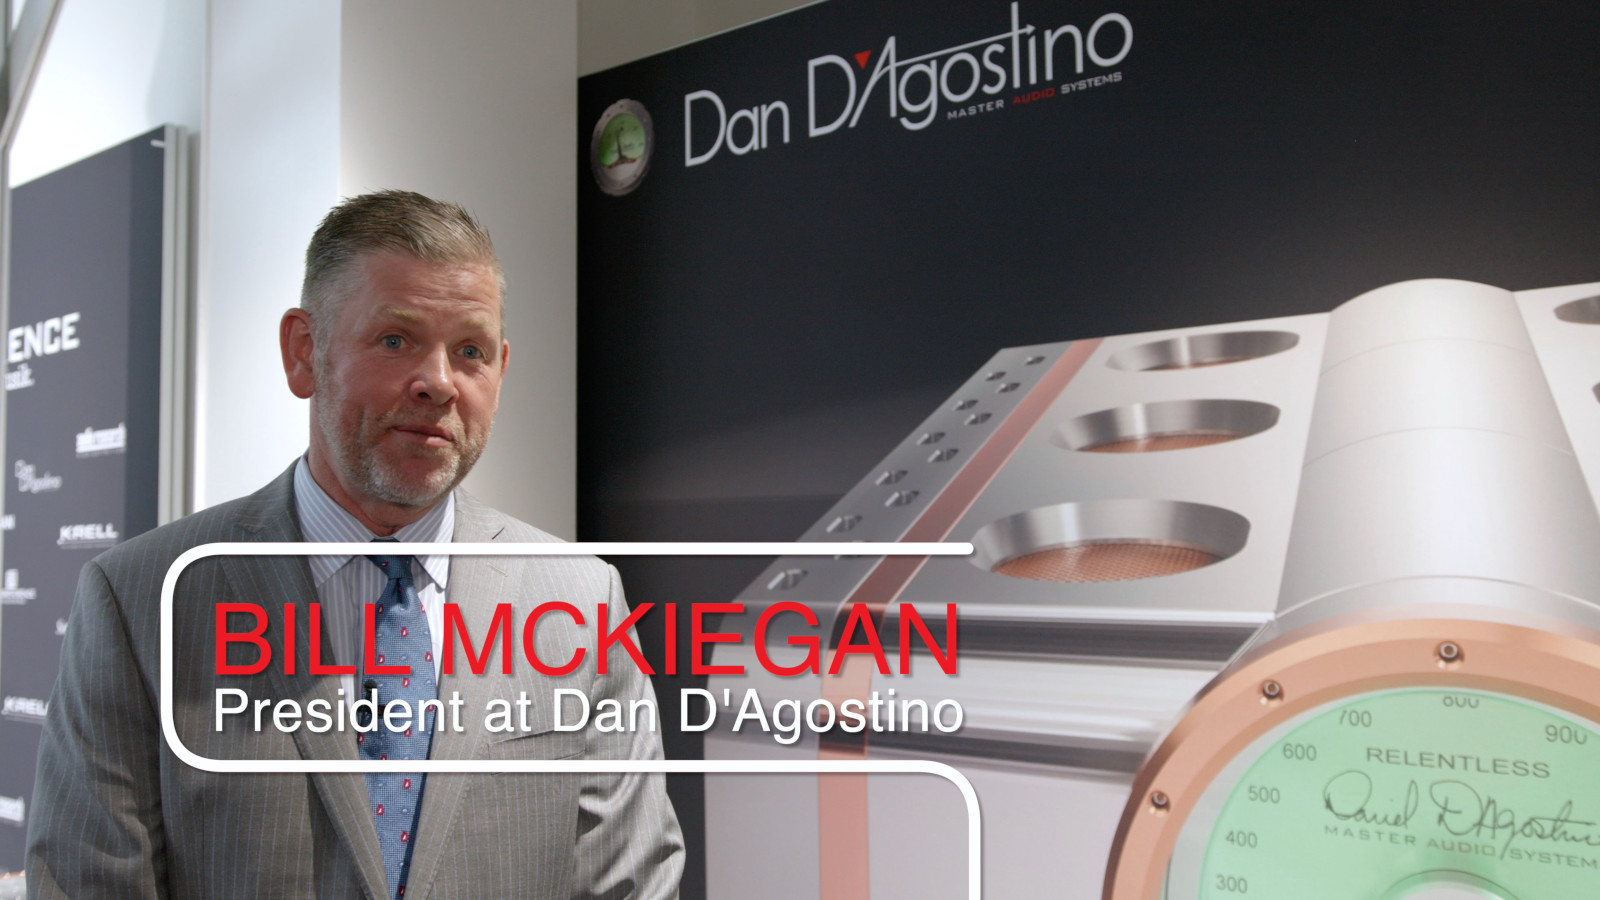 dan-dagostino-at-high-end-2019